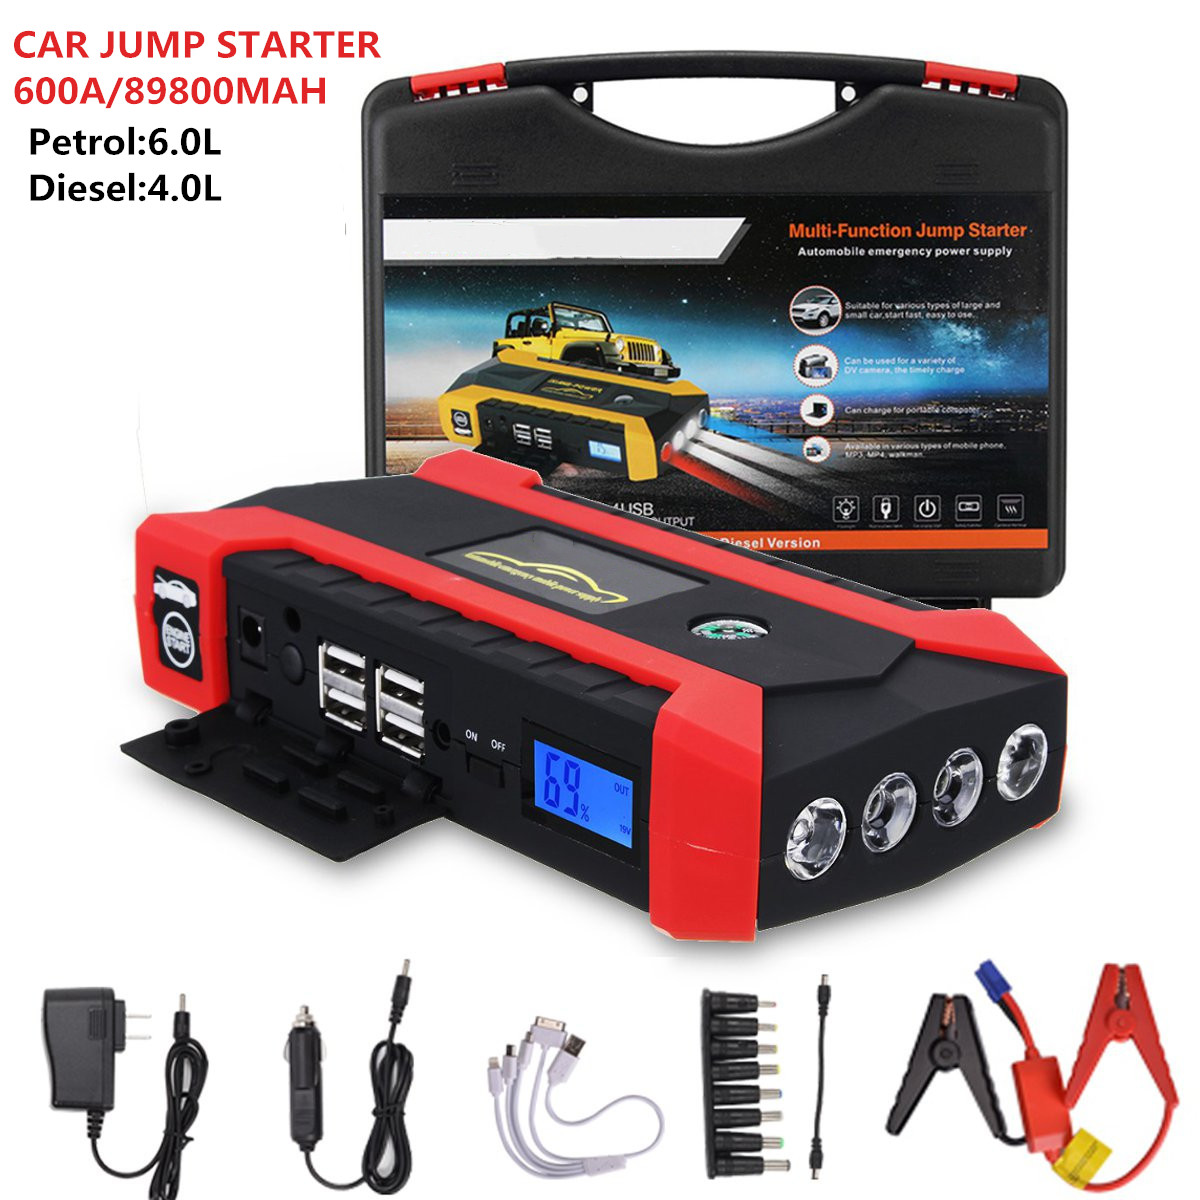 12V 600A Portable Car Jump Starter  Multifunction Auto Car Battery Booster Charger Booster Emergency Power Bank Starting Device